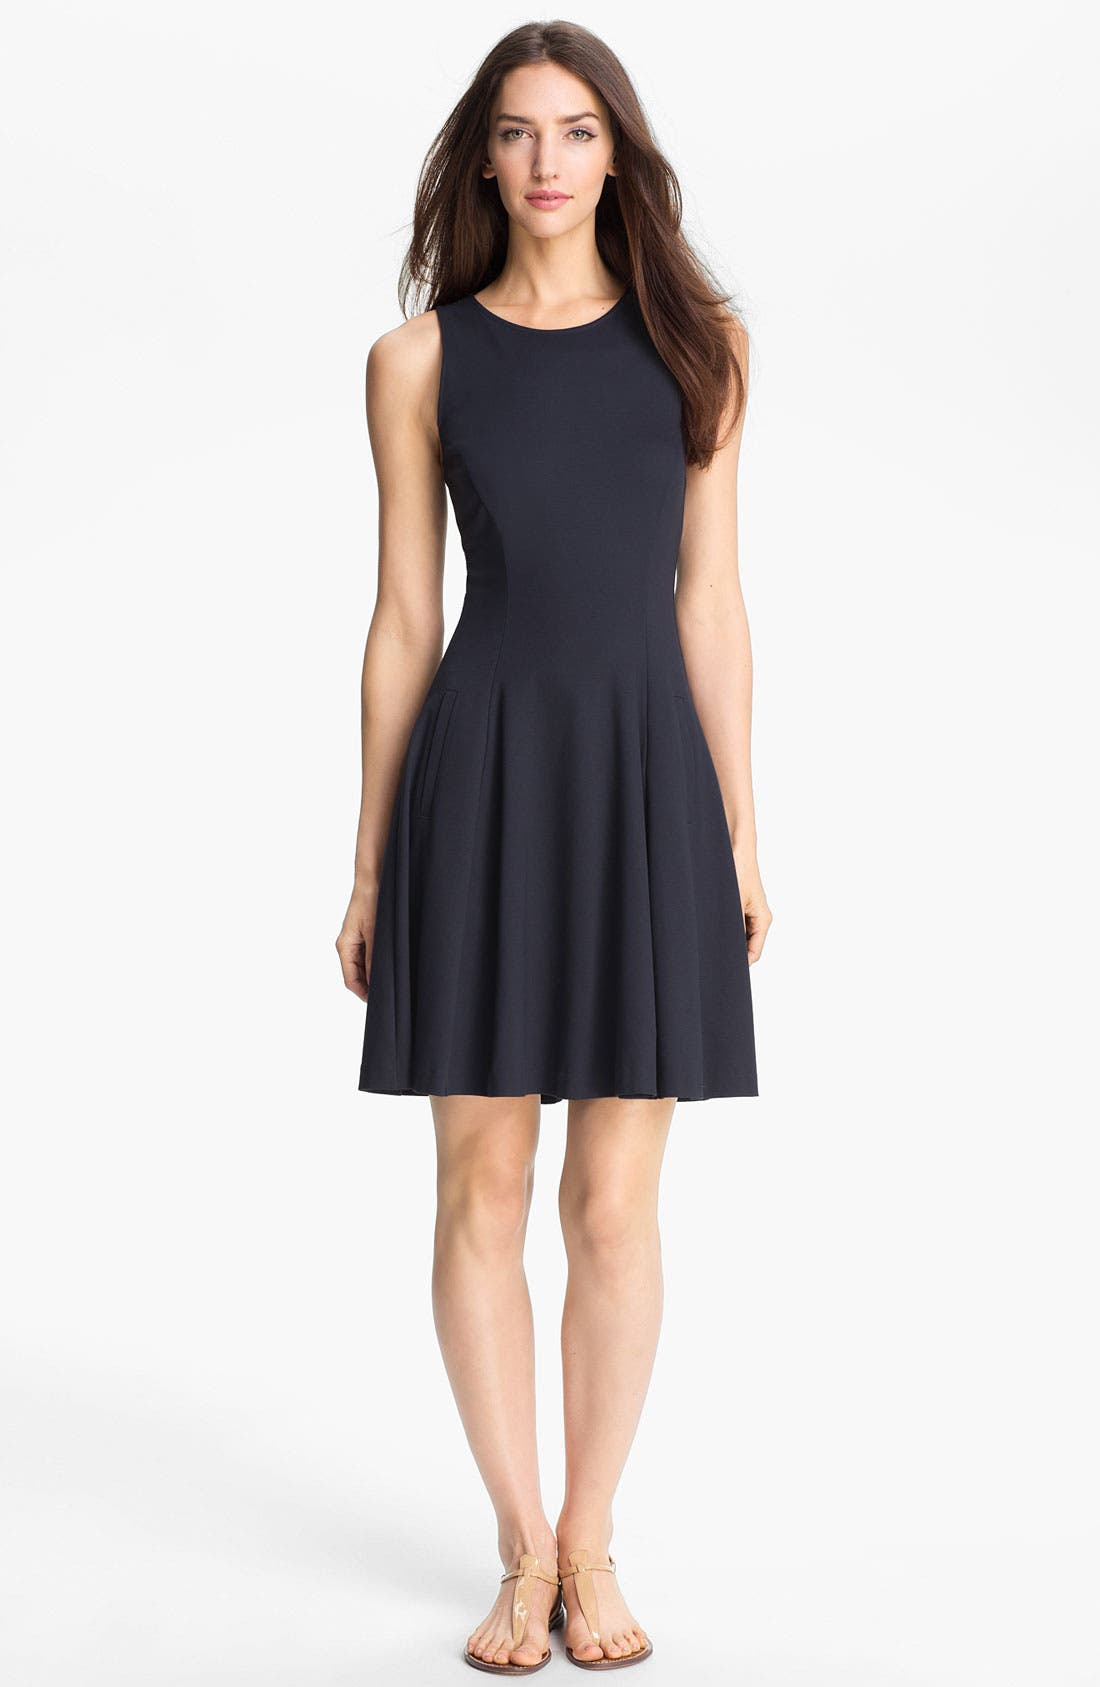 Main Image - Theory 'Panoa' Stretch Fit & Flare Dress